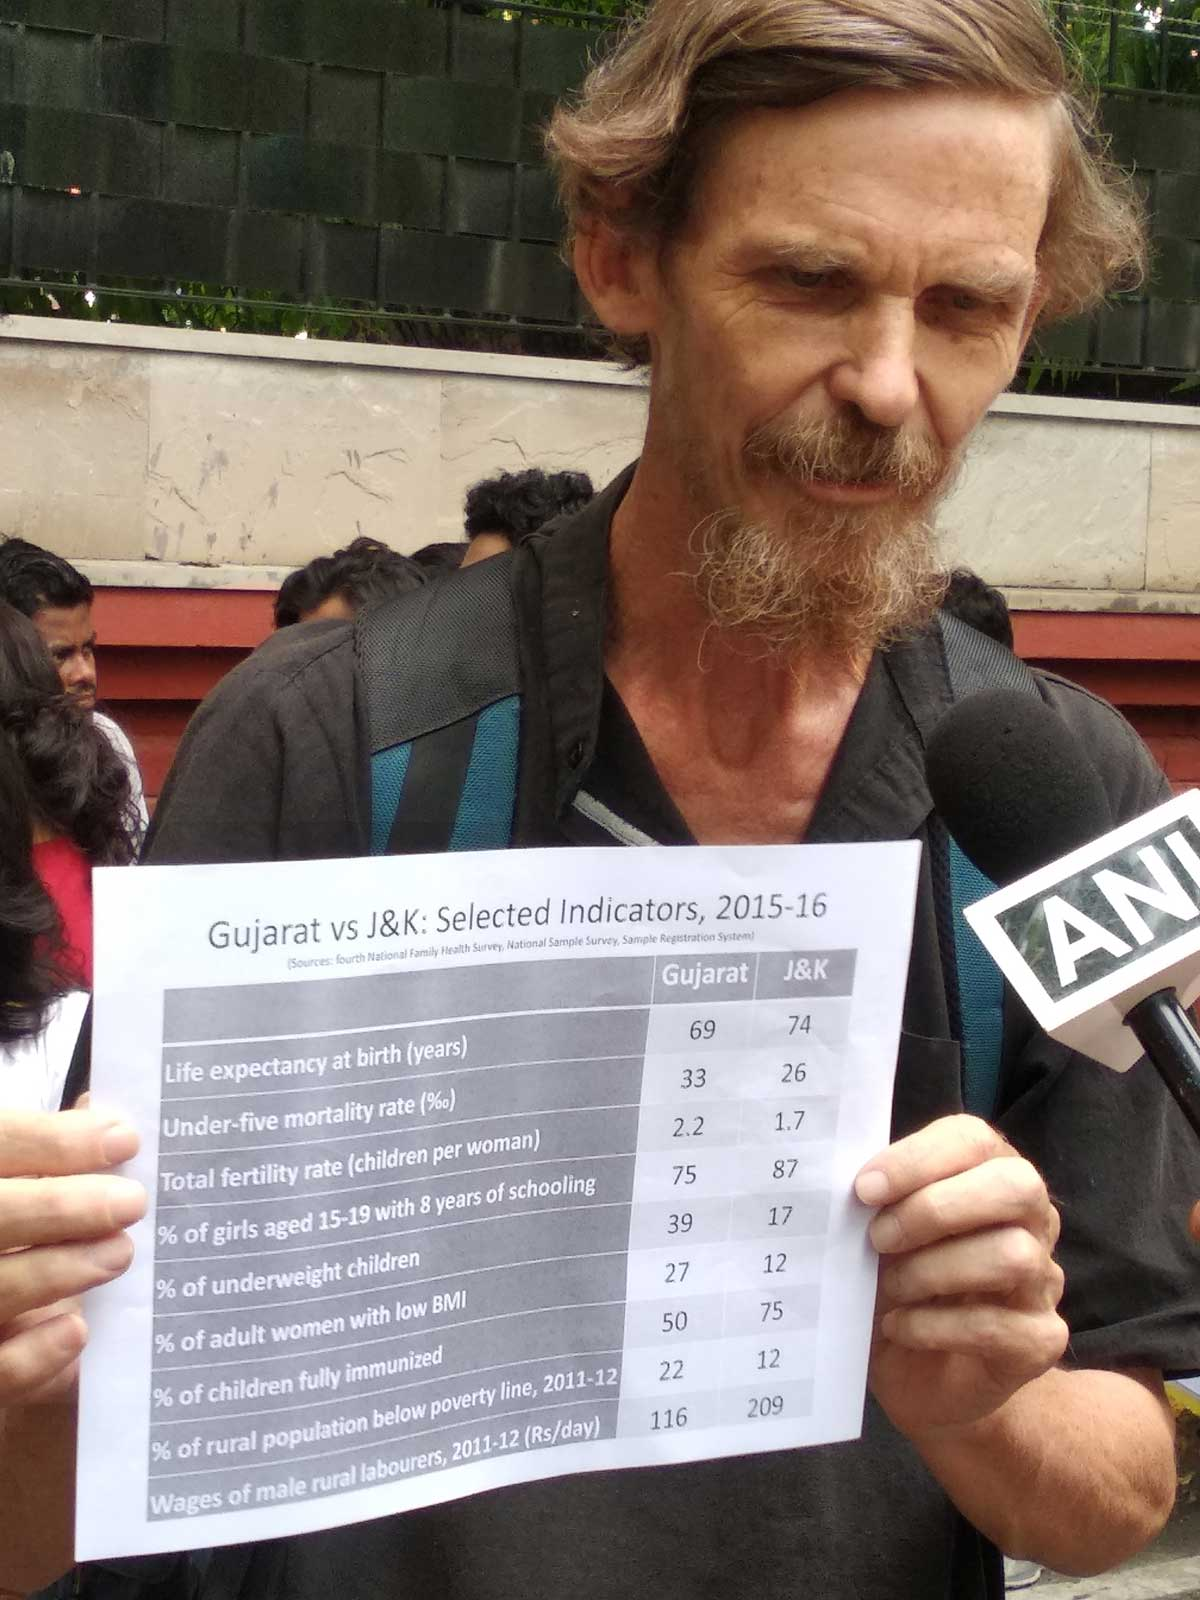 Renowned economist Jean Dreze offers data to challenge the development narrative as a justification for the abrogation of Article 370 of the Indian Constitution. Photo: Jean Dreze